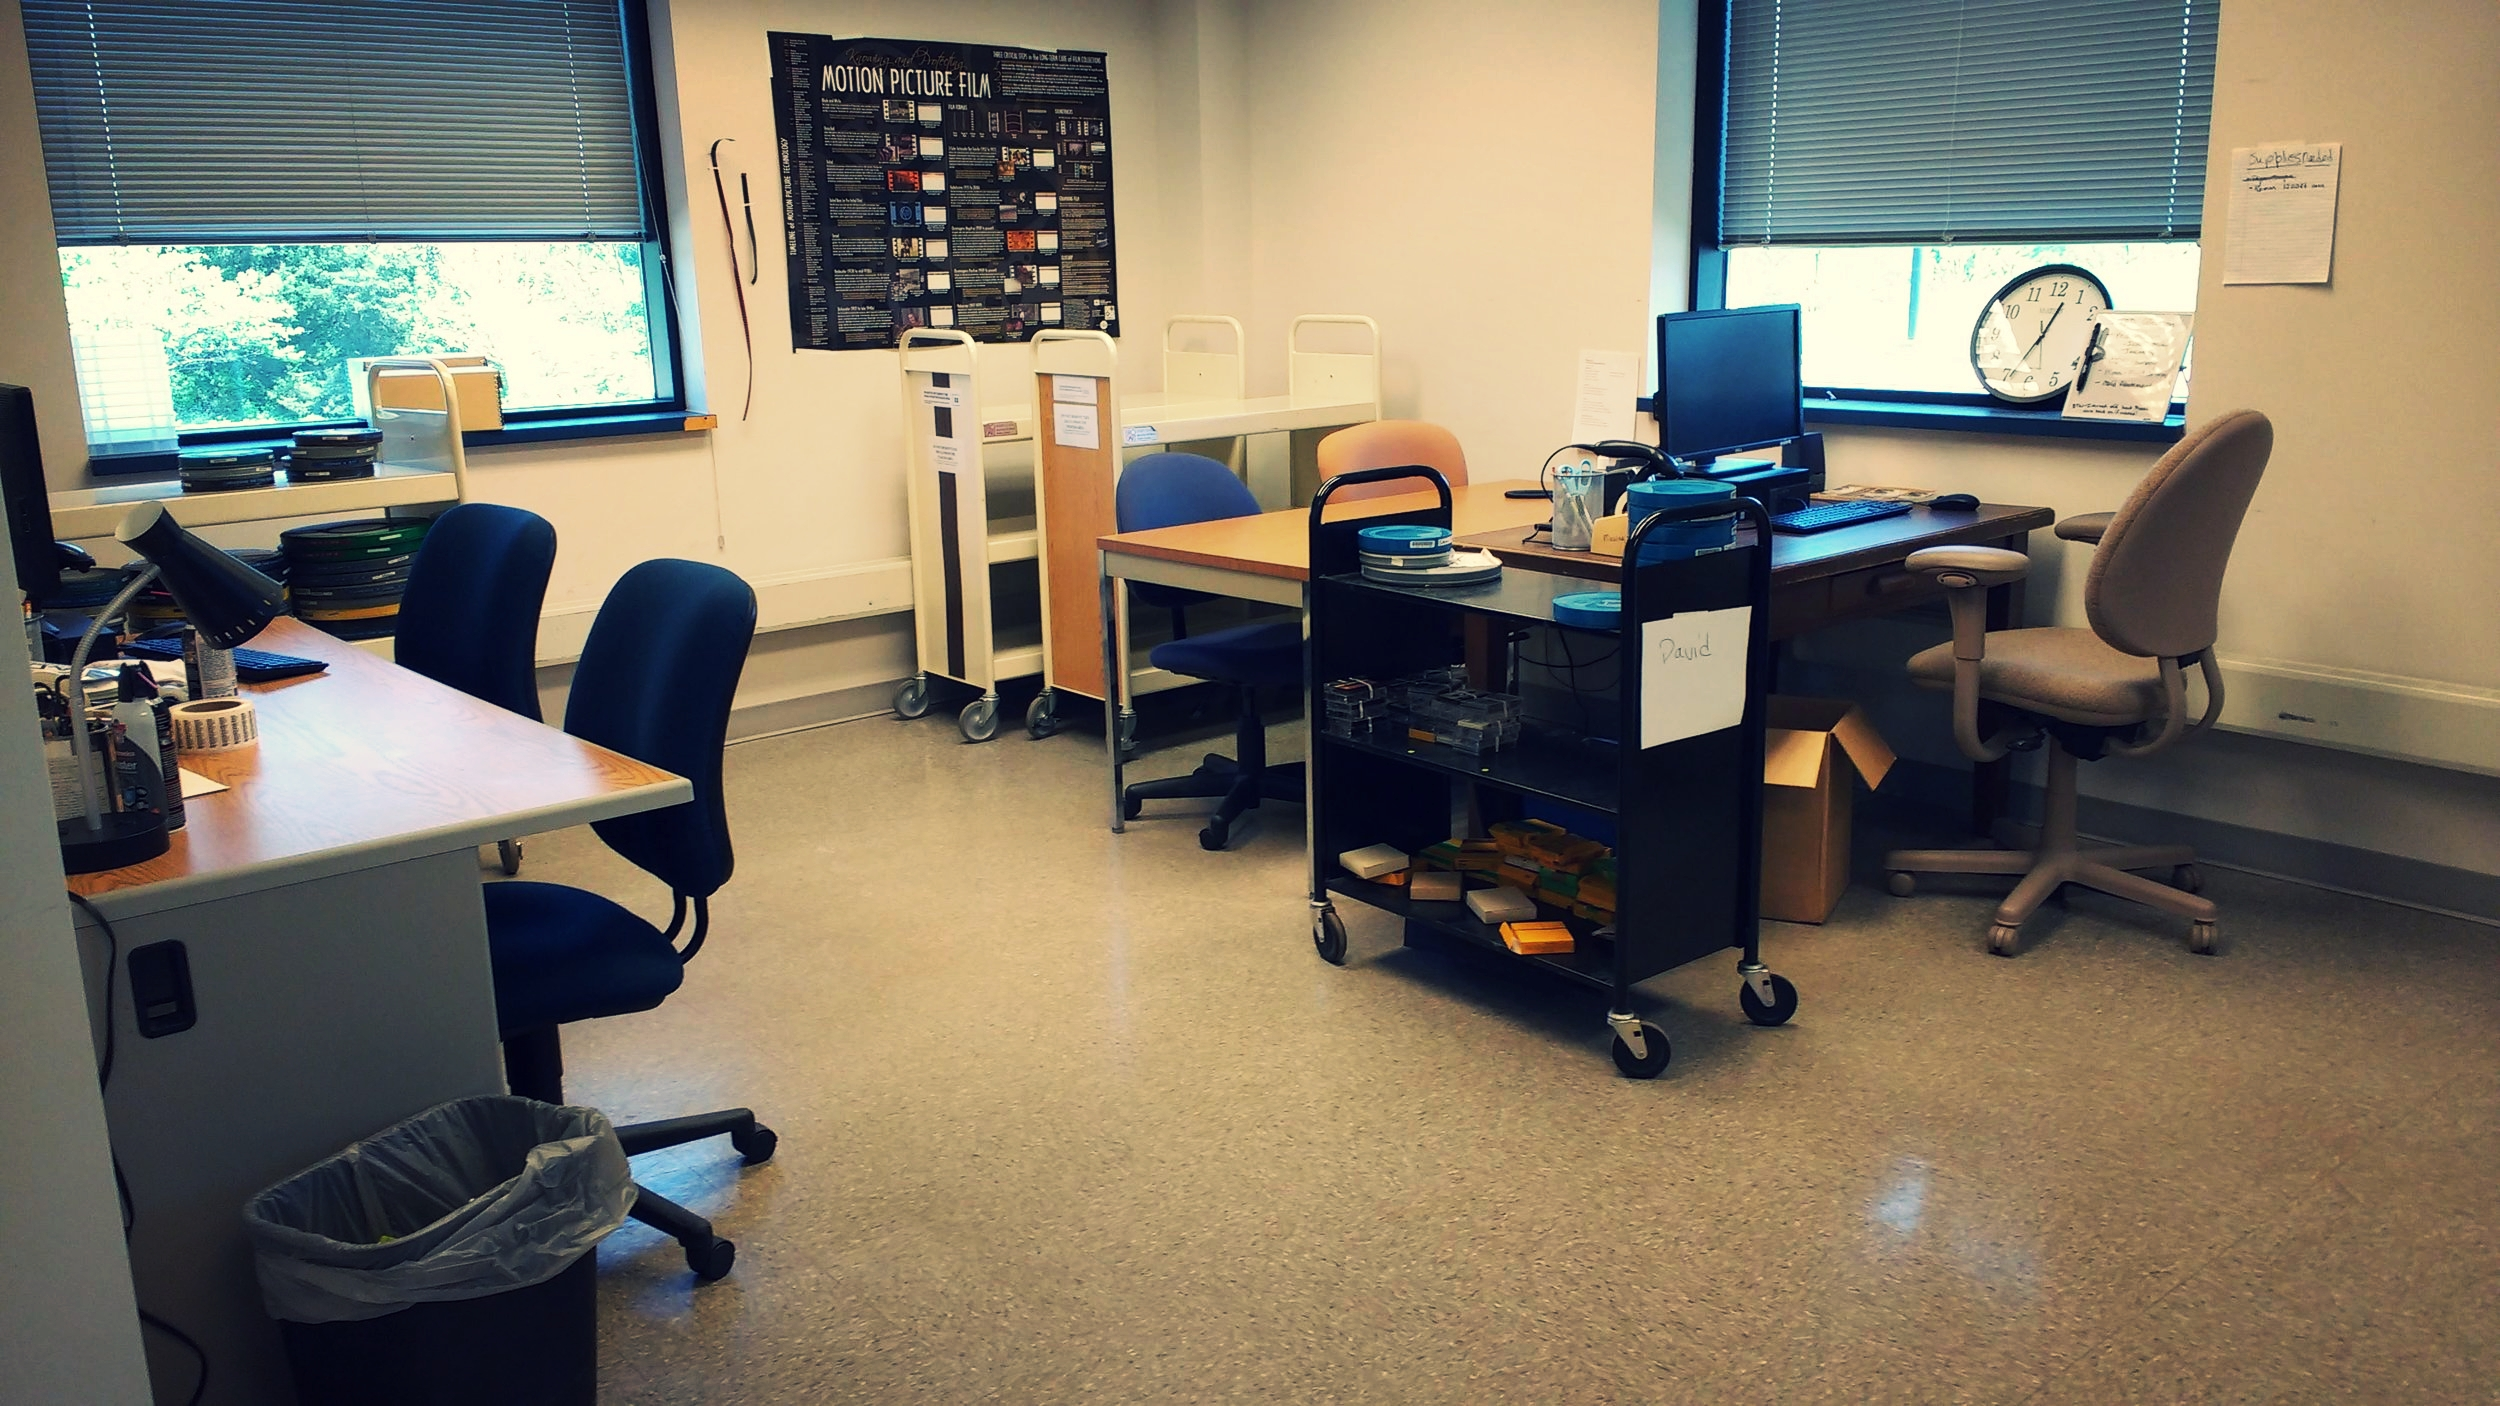 Processing space at the Auxillary Library Facility